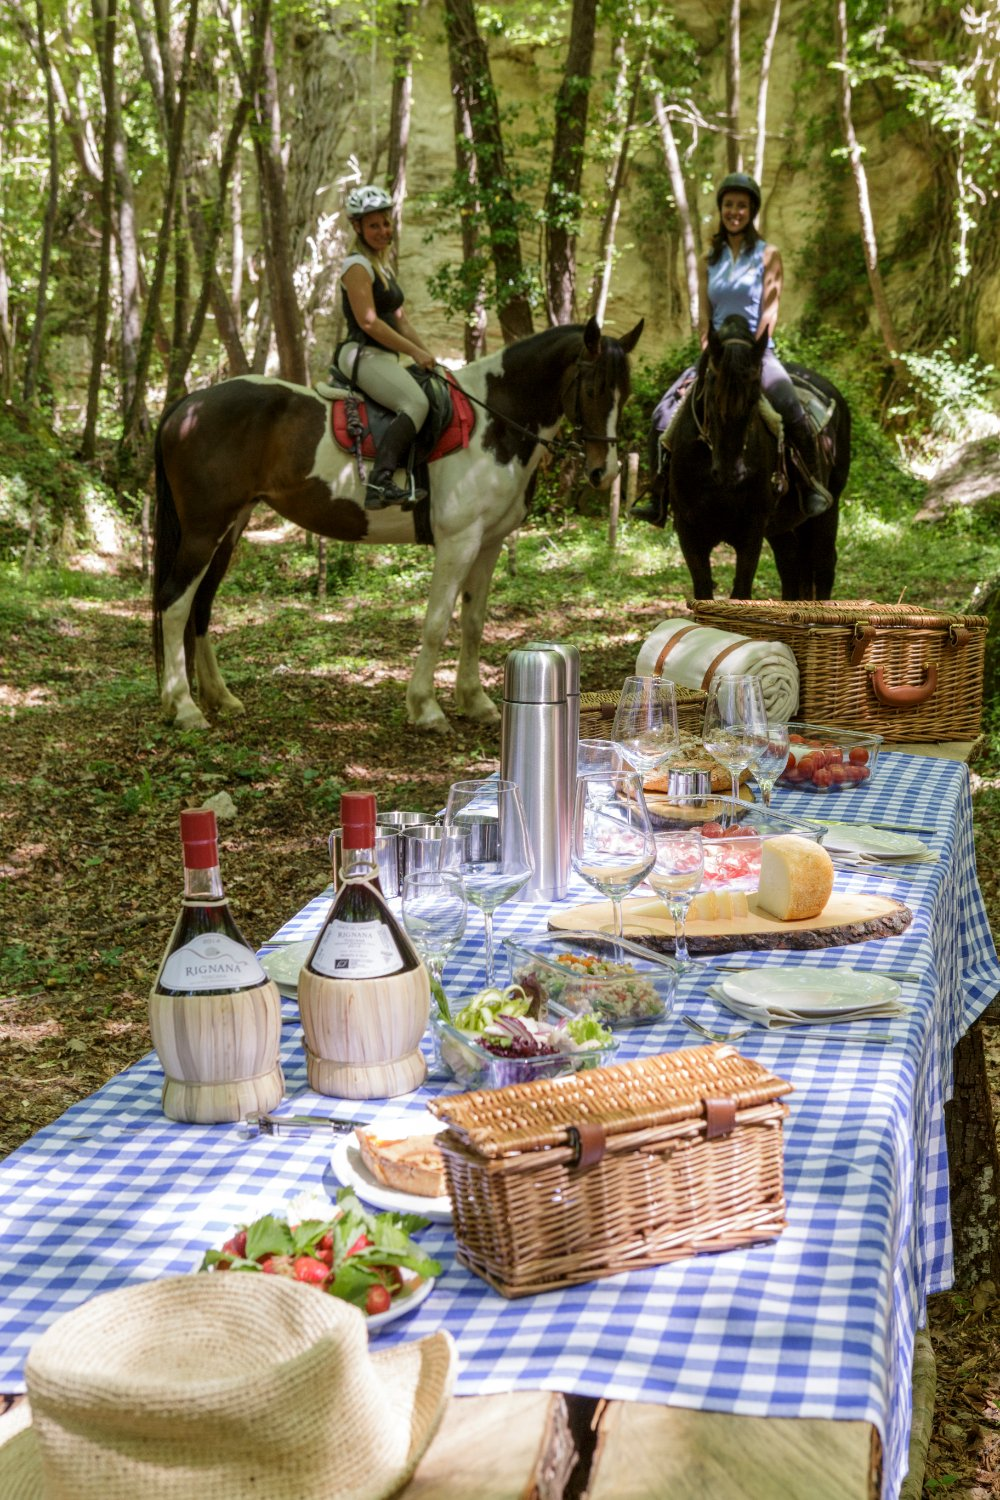 Borgo Pignano Food and Horses